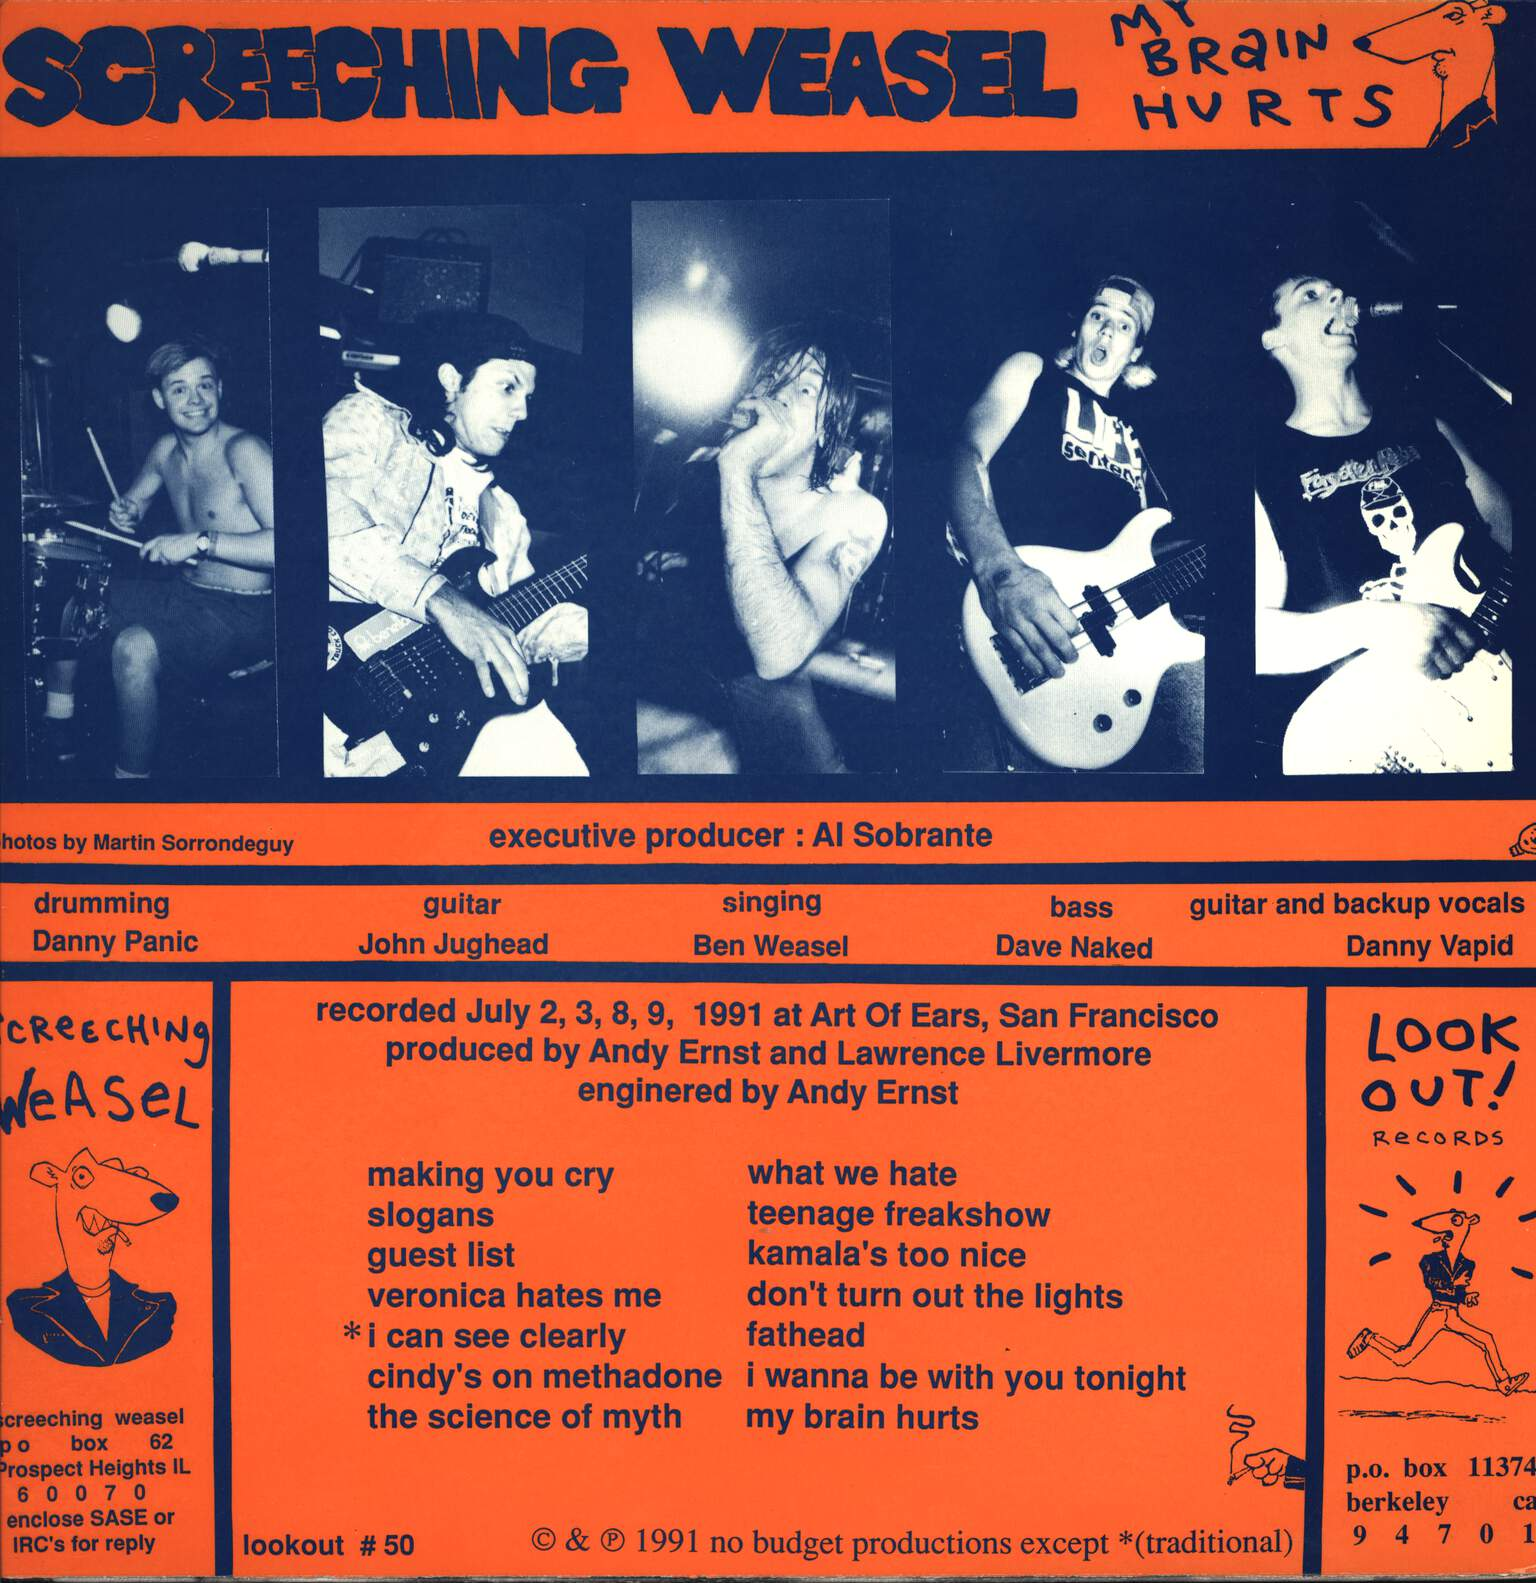 Screeching Weasel: My Brain Hurts, LP (Vinyl)